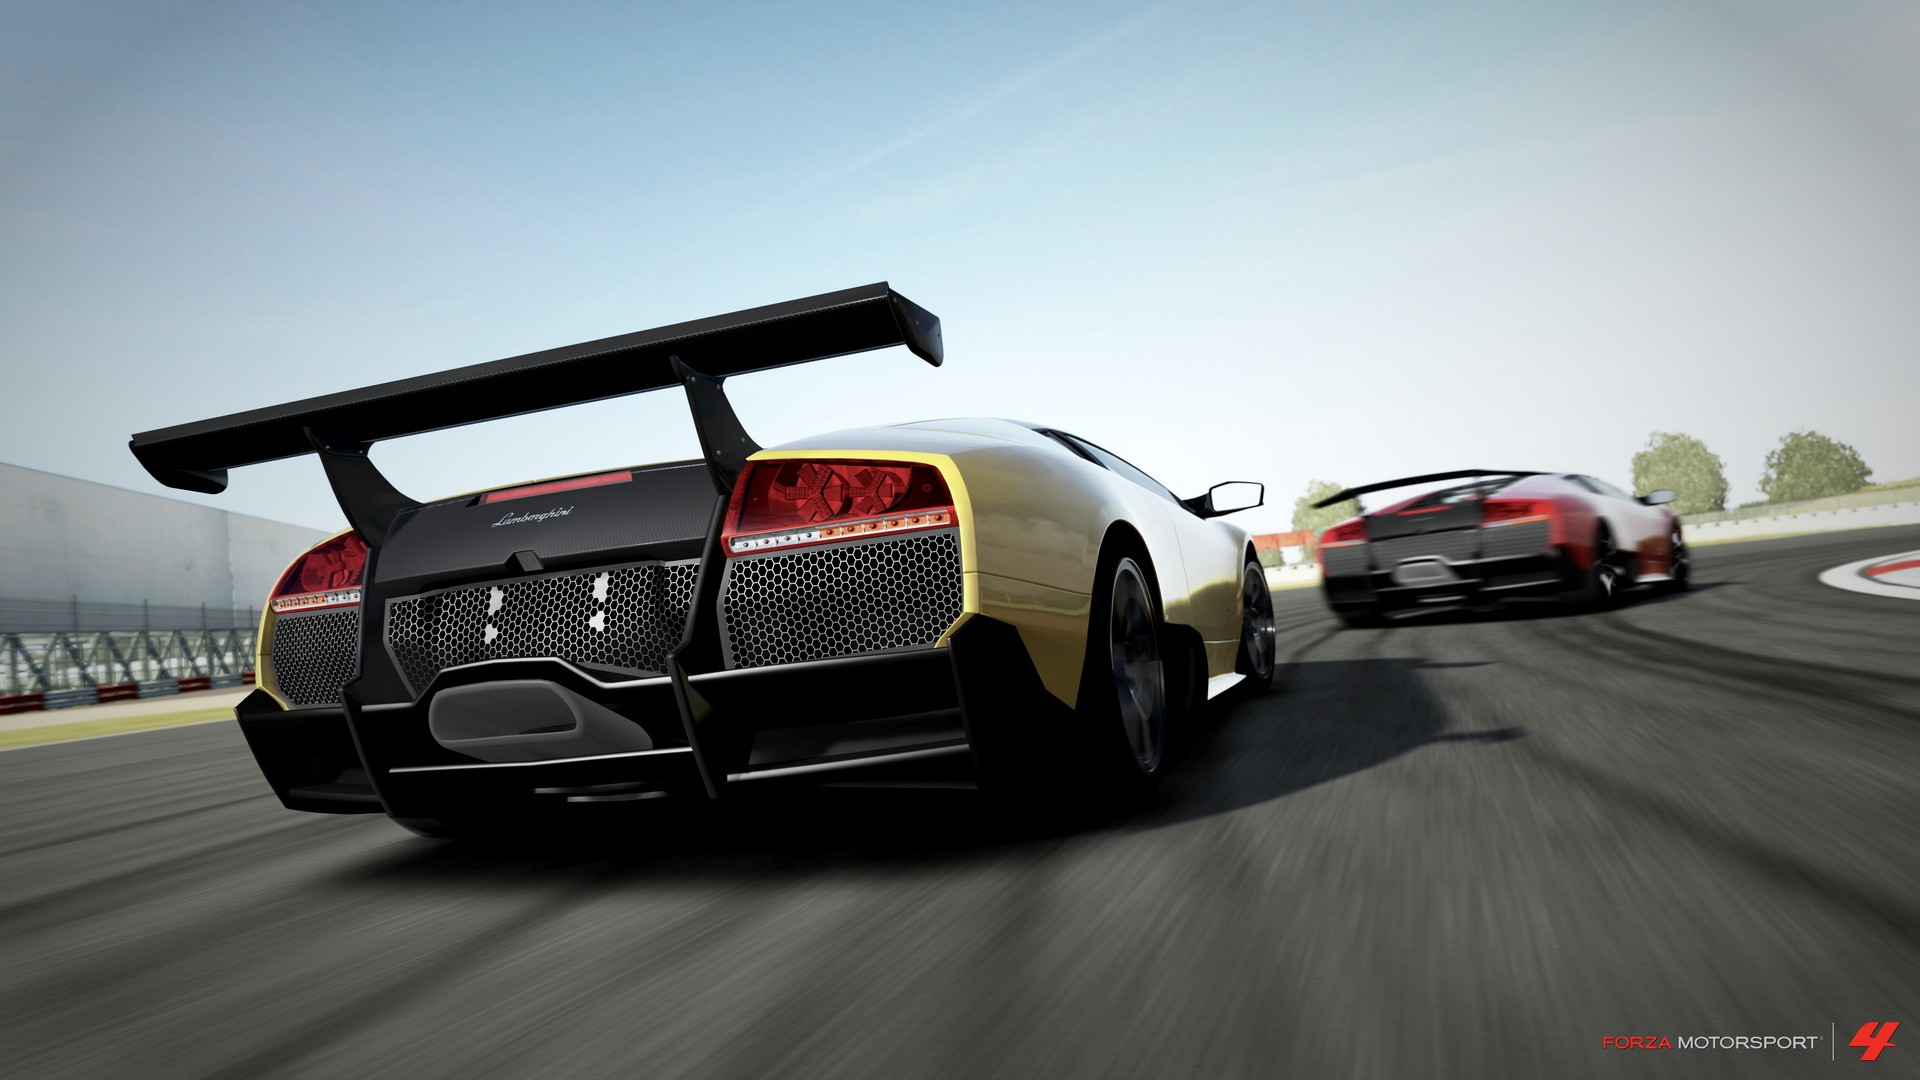 Racing Car Games Hd Wallpaper: Forza Motorsport Full HD Wallpaper And Background Image